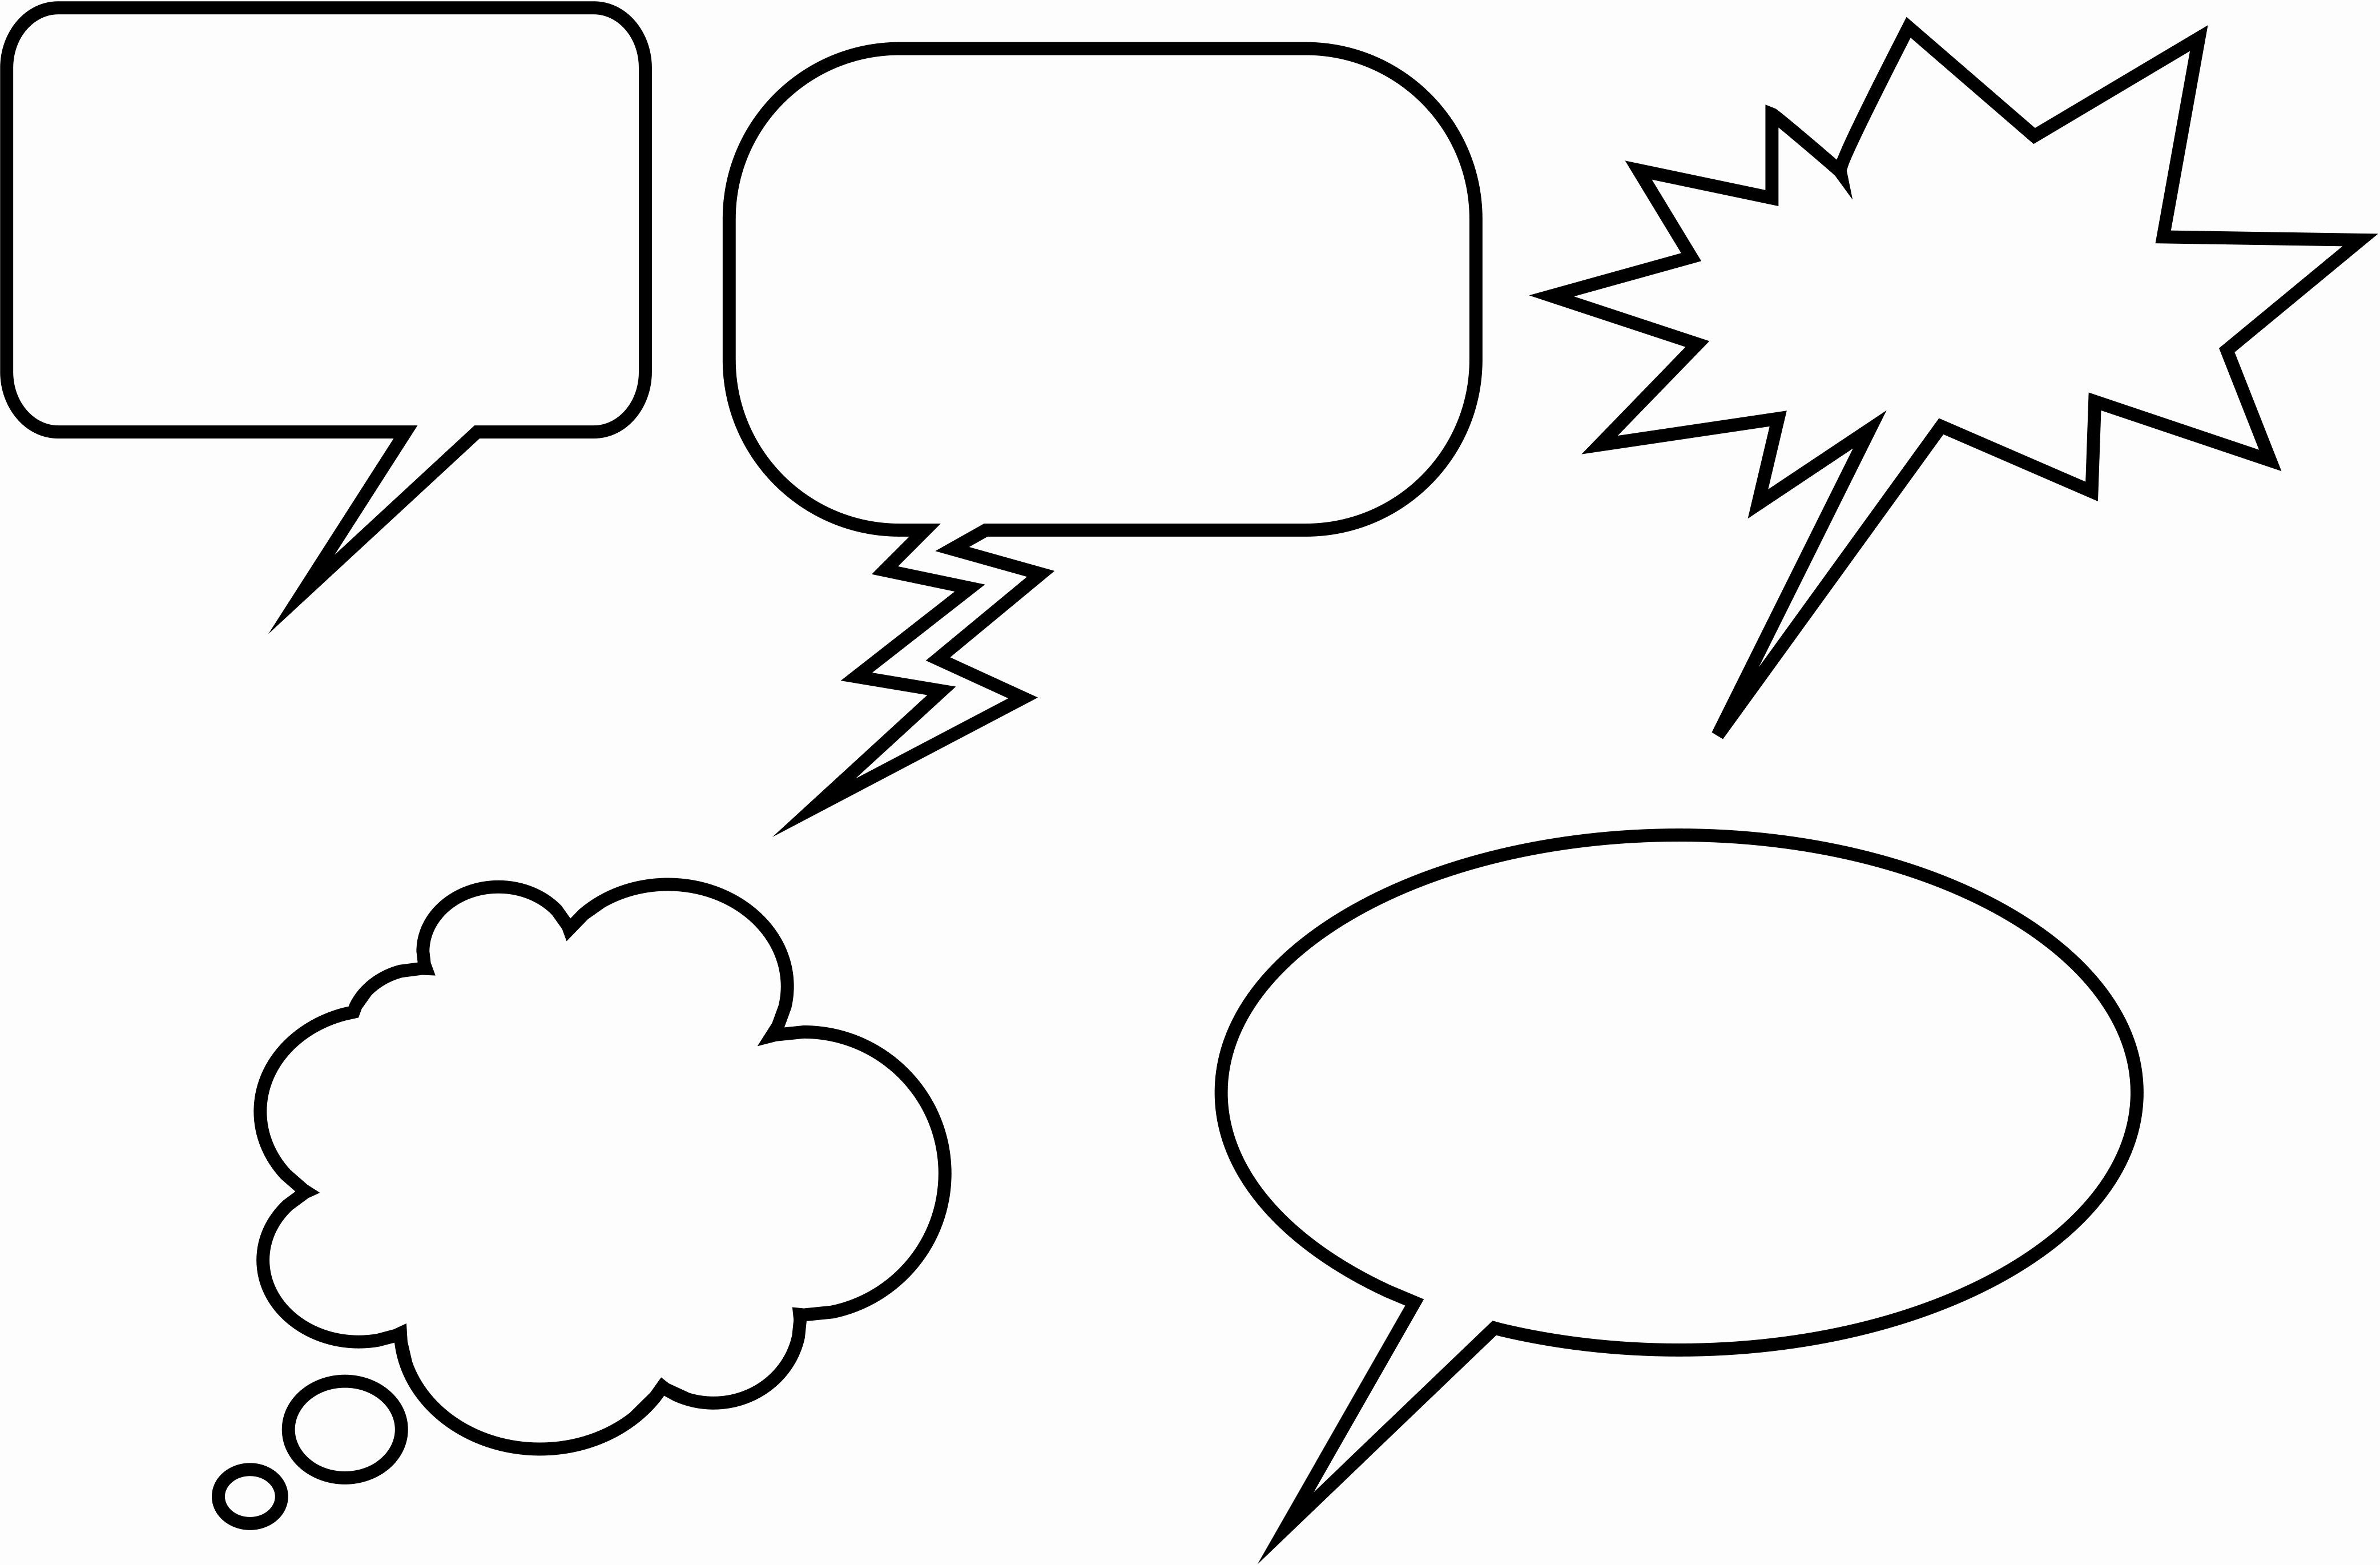 Comic Strip Template Word Lovely Ic Book Speech Bubbles Printable Clipart Best